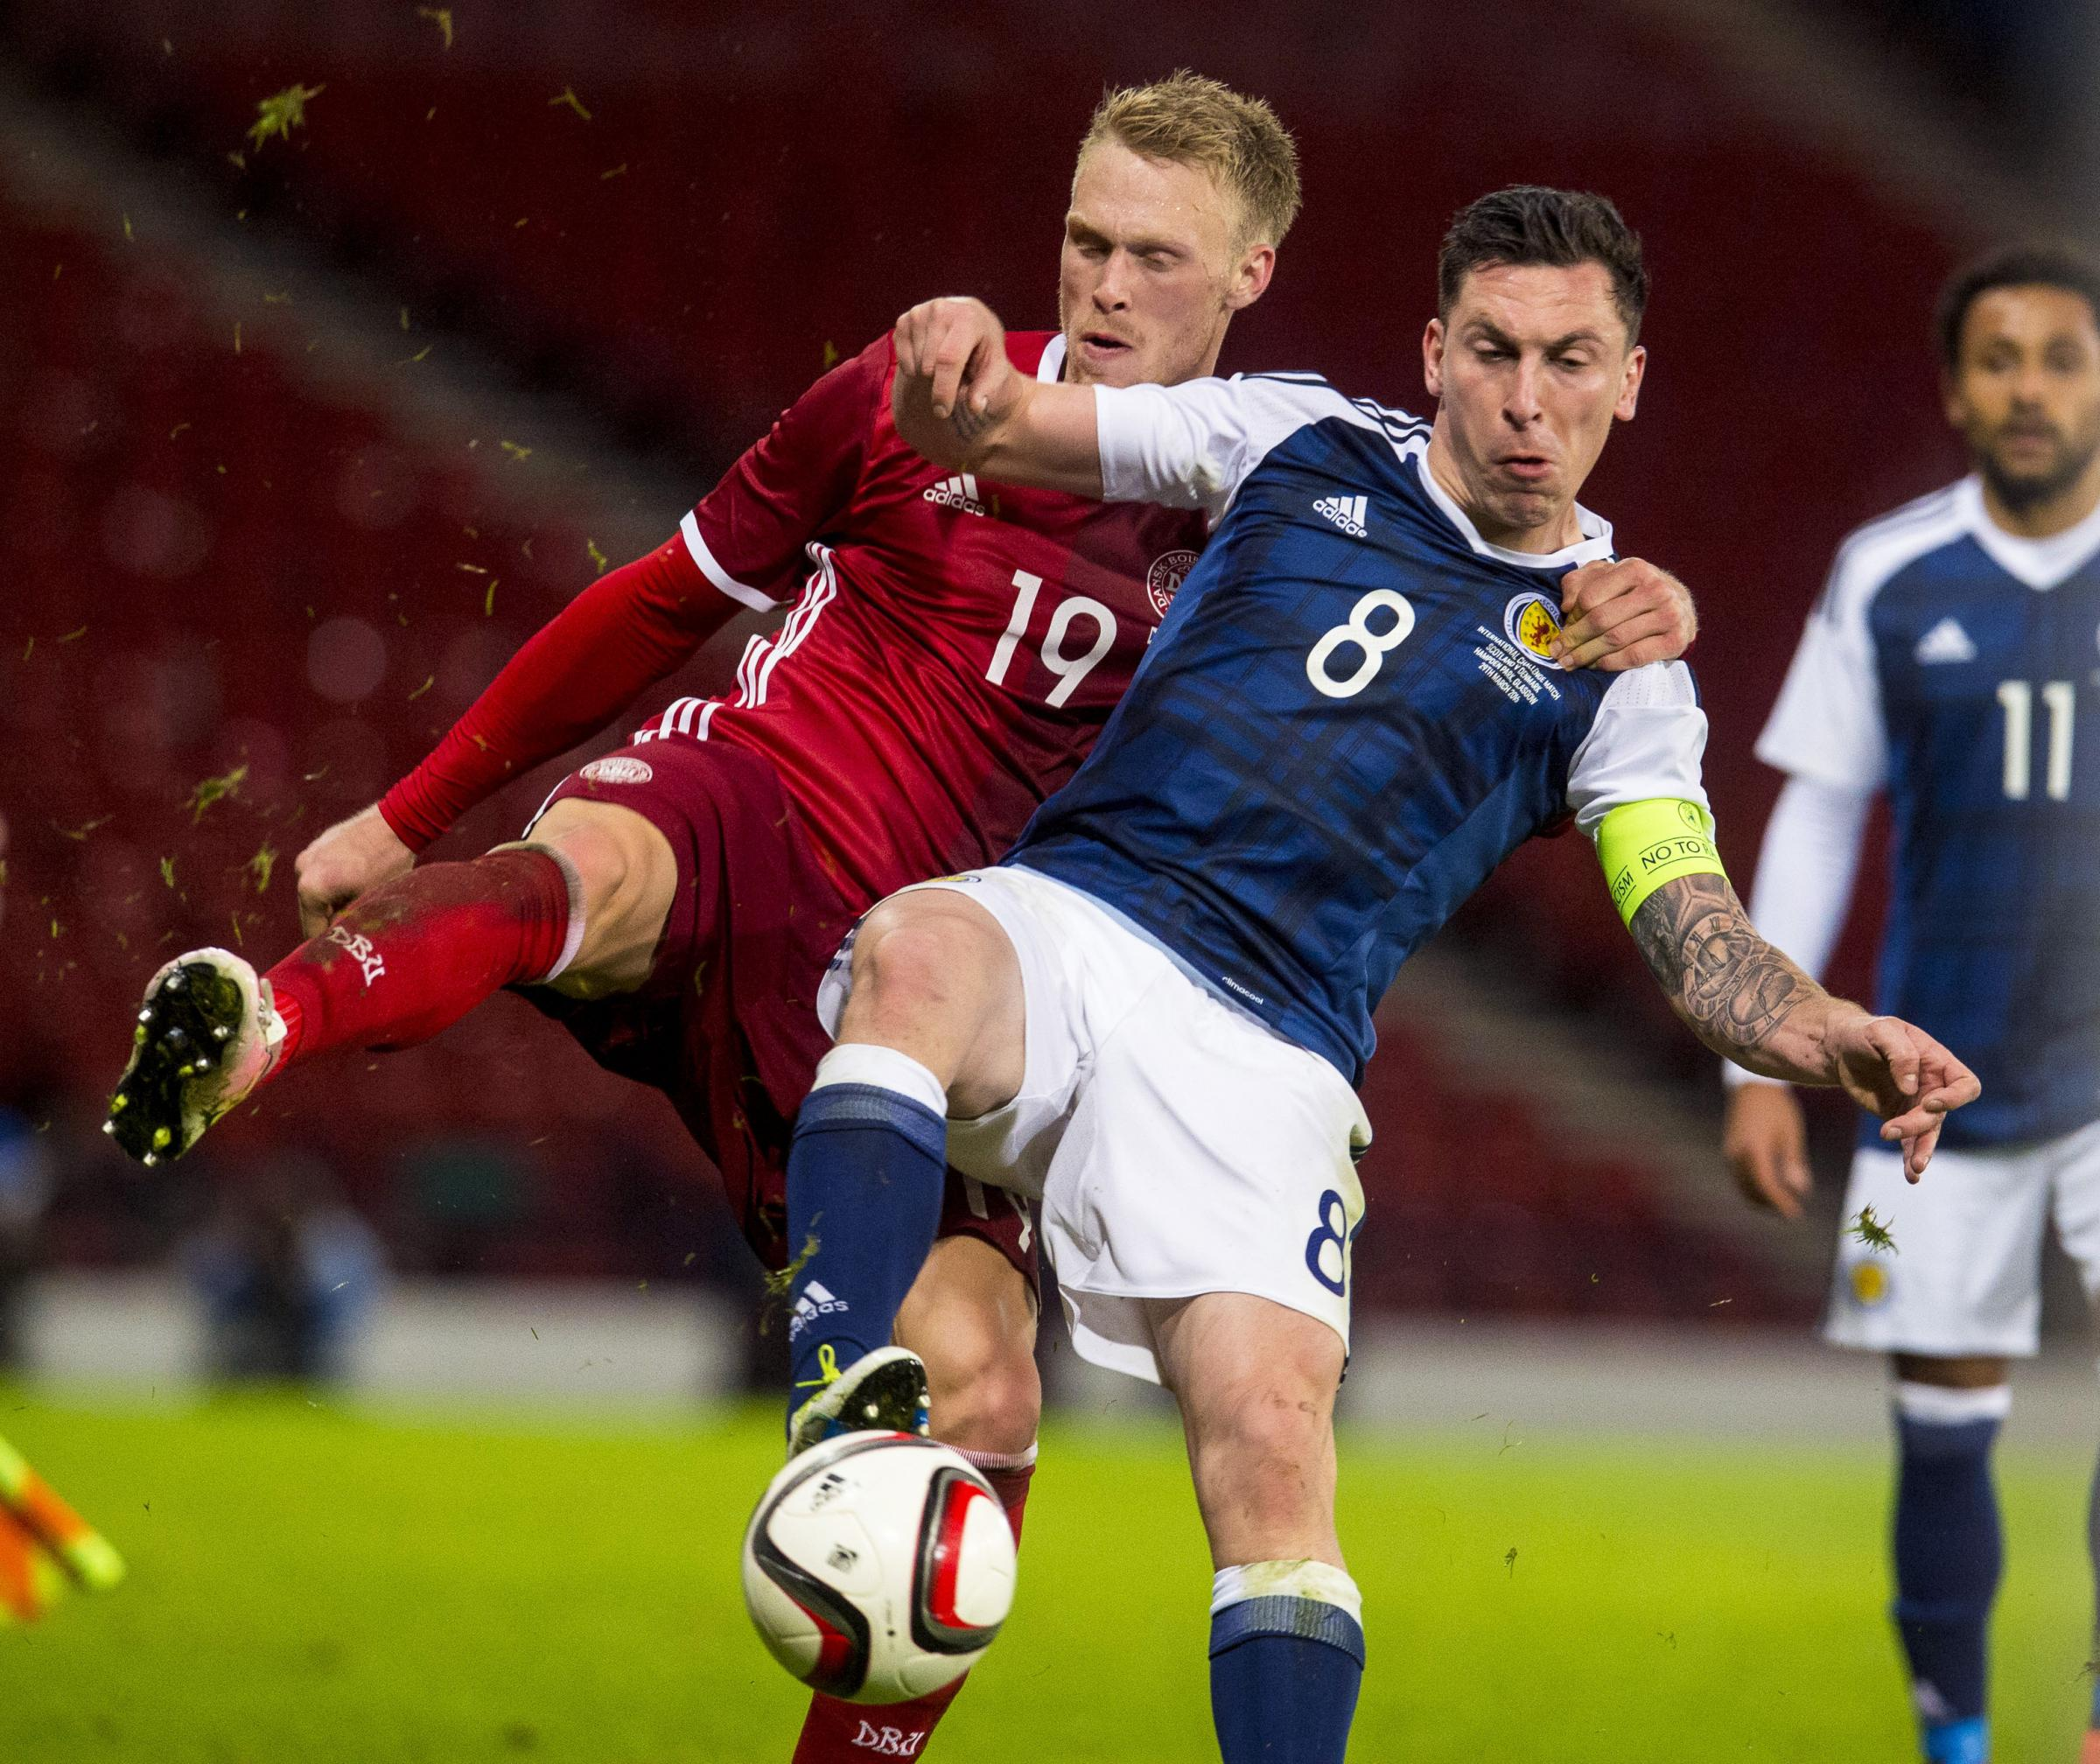 TRANSFER TARGET: Newcastle are hoping to sign Denmark international Nicolai Jorgensen, pictured battling for possession with Scotland's Scott Brown